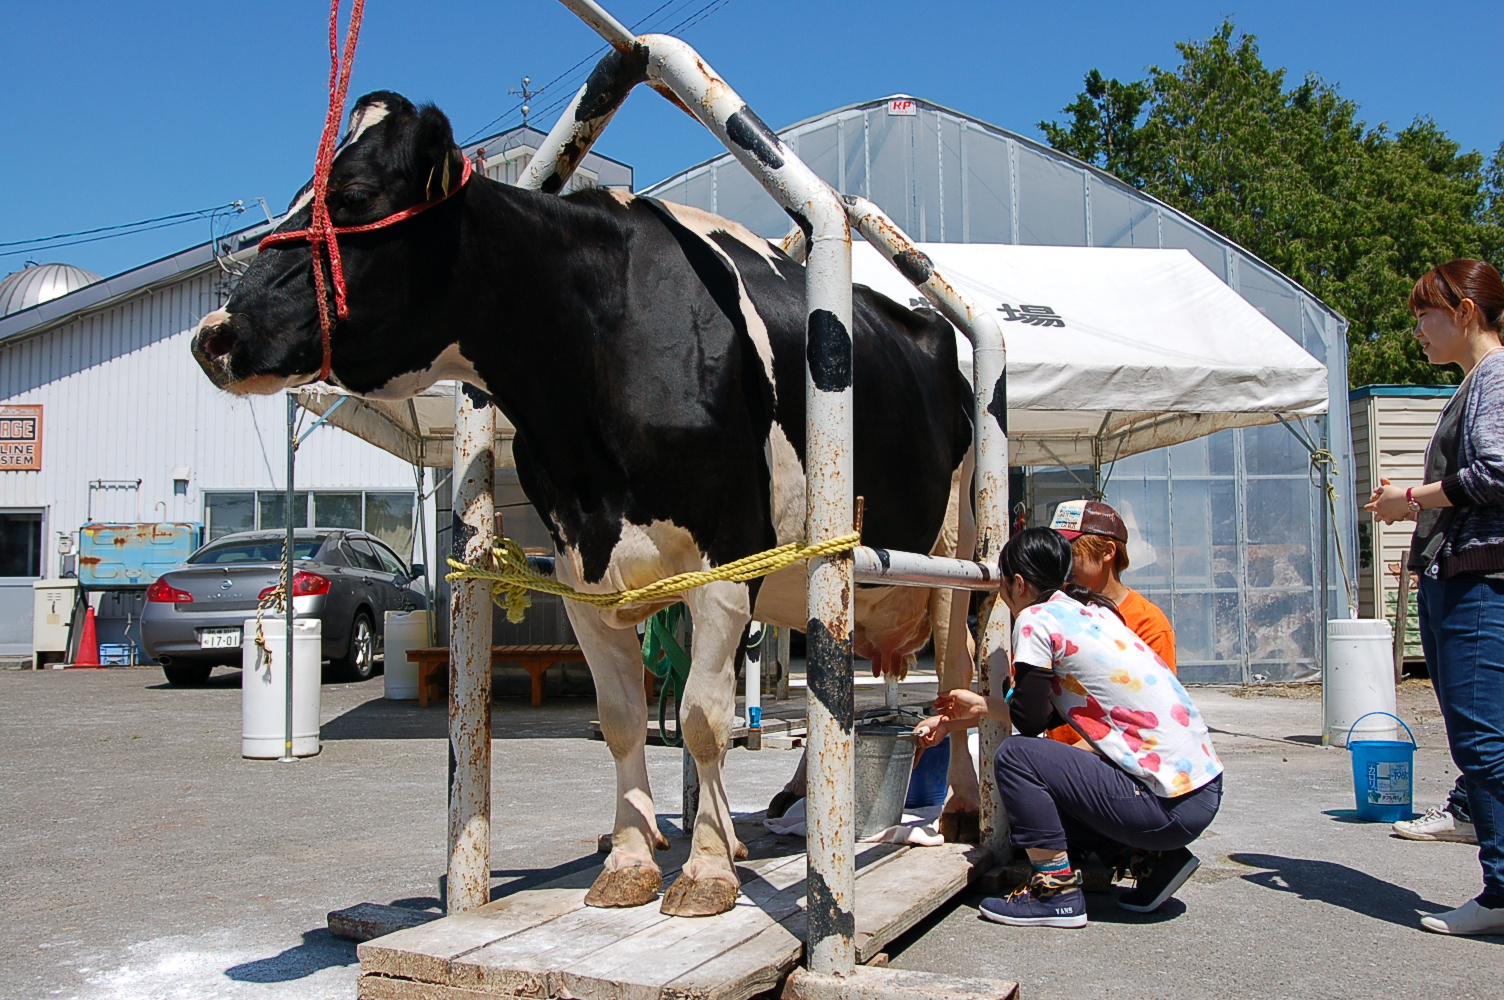 Dairy Farming Experiences at a Farm in Eniwa City [Eniwa]